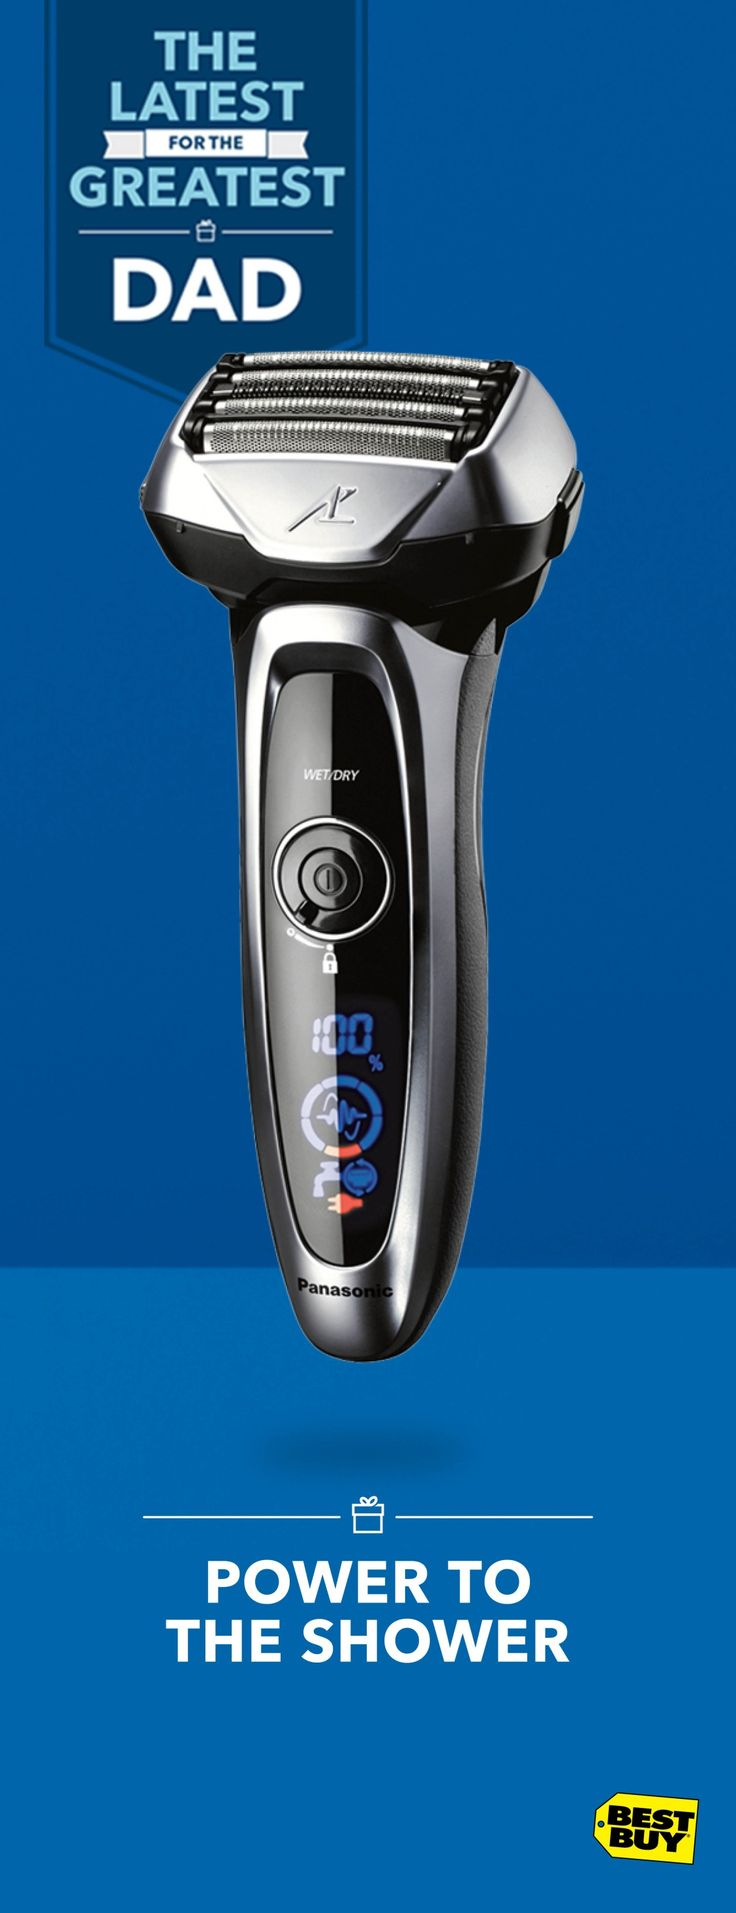 If the big guy's morning routine includes a clean shave, this wet/dry Panasonic arc5 shaver belongs in his shower caddy. The Multi-Flex pivoting head provides closeness and comfort. A built-in Shave sensor monitors facial hair density and adjusts power to its 5 blades automatically, making it quite possibly the best beard trimmer and electric shaver he'll ever own. Find powerful Father's Day gifts like this and more at Best Buy.